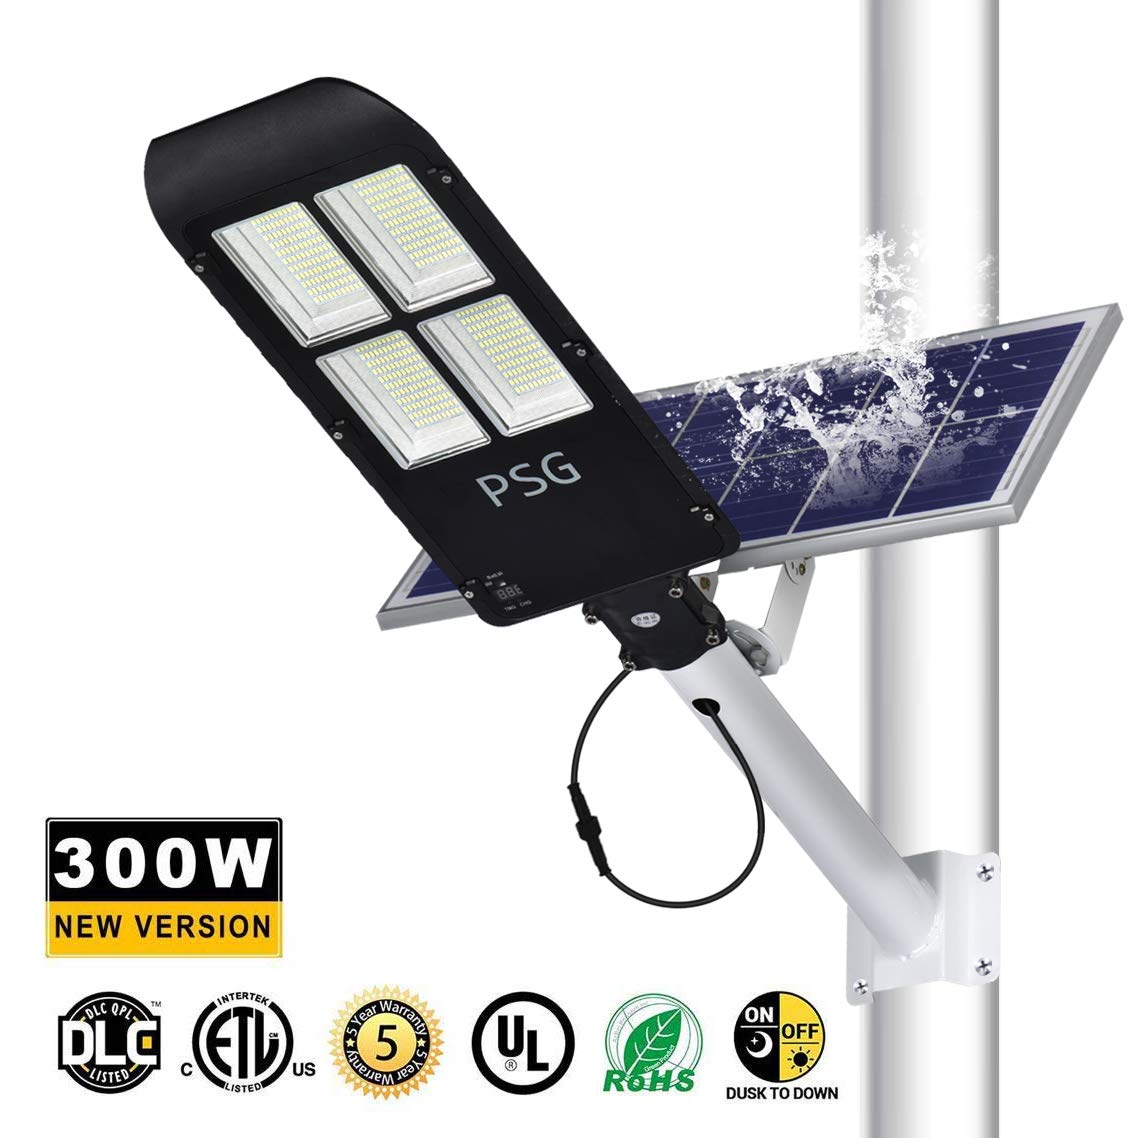 300W Solar Street Lights Outdoor Lamp, 480 LEDs 12000 Lumens, with Remote Control,Light Control, Dusk to Dawn Security Led Flood Light for Yard, Garden, Street, Basketball Court by PSG